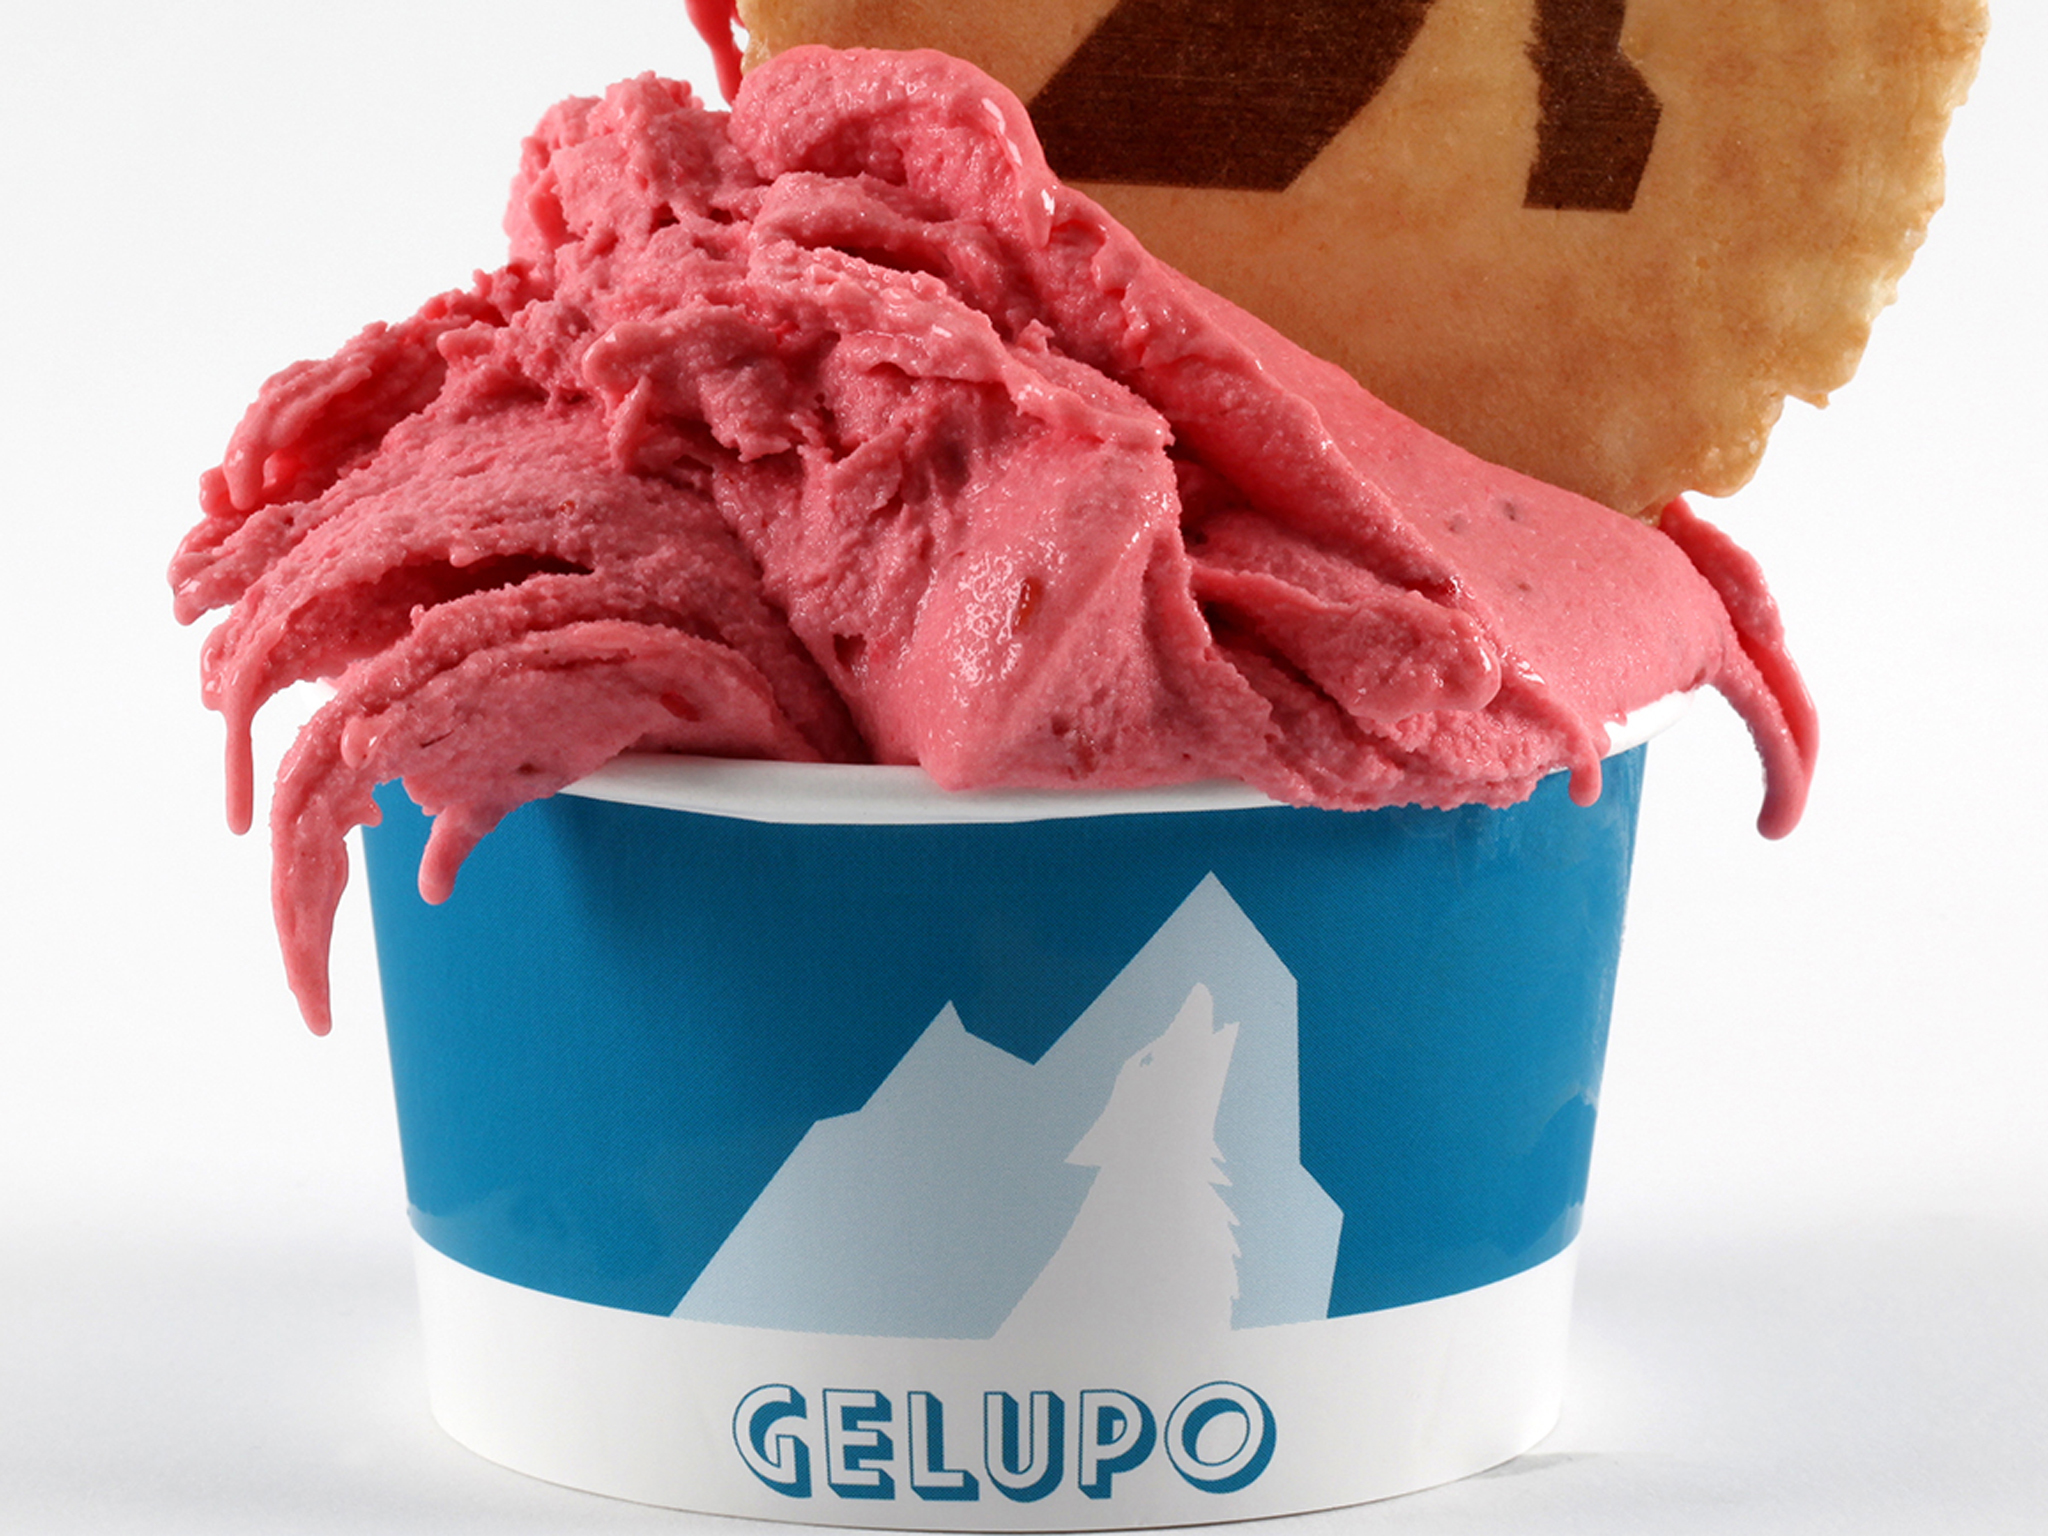 Blood orange sorbet at Gelupo